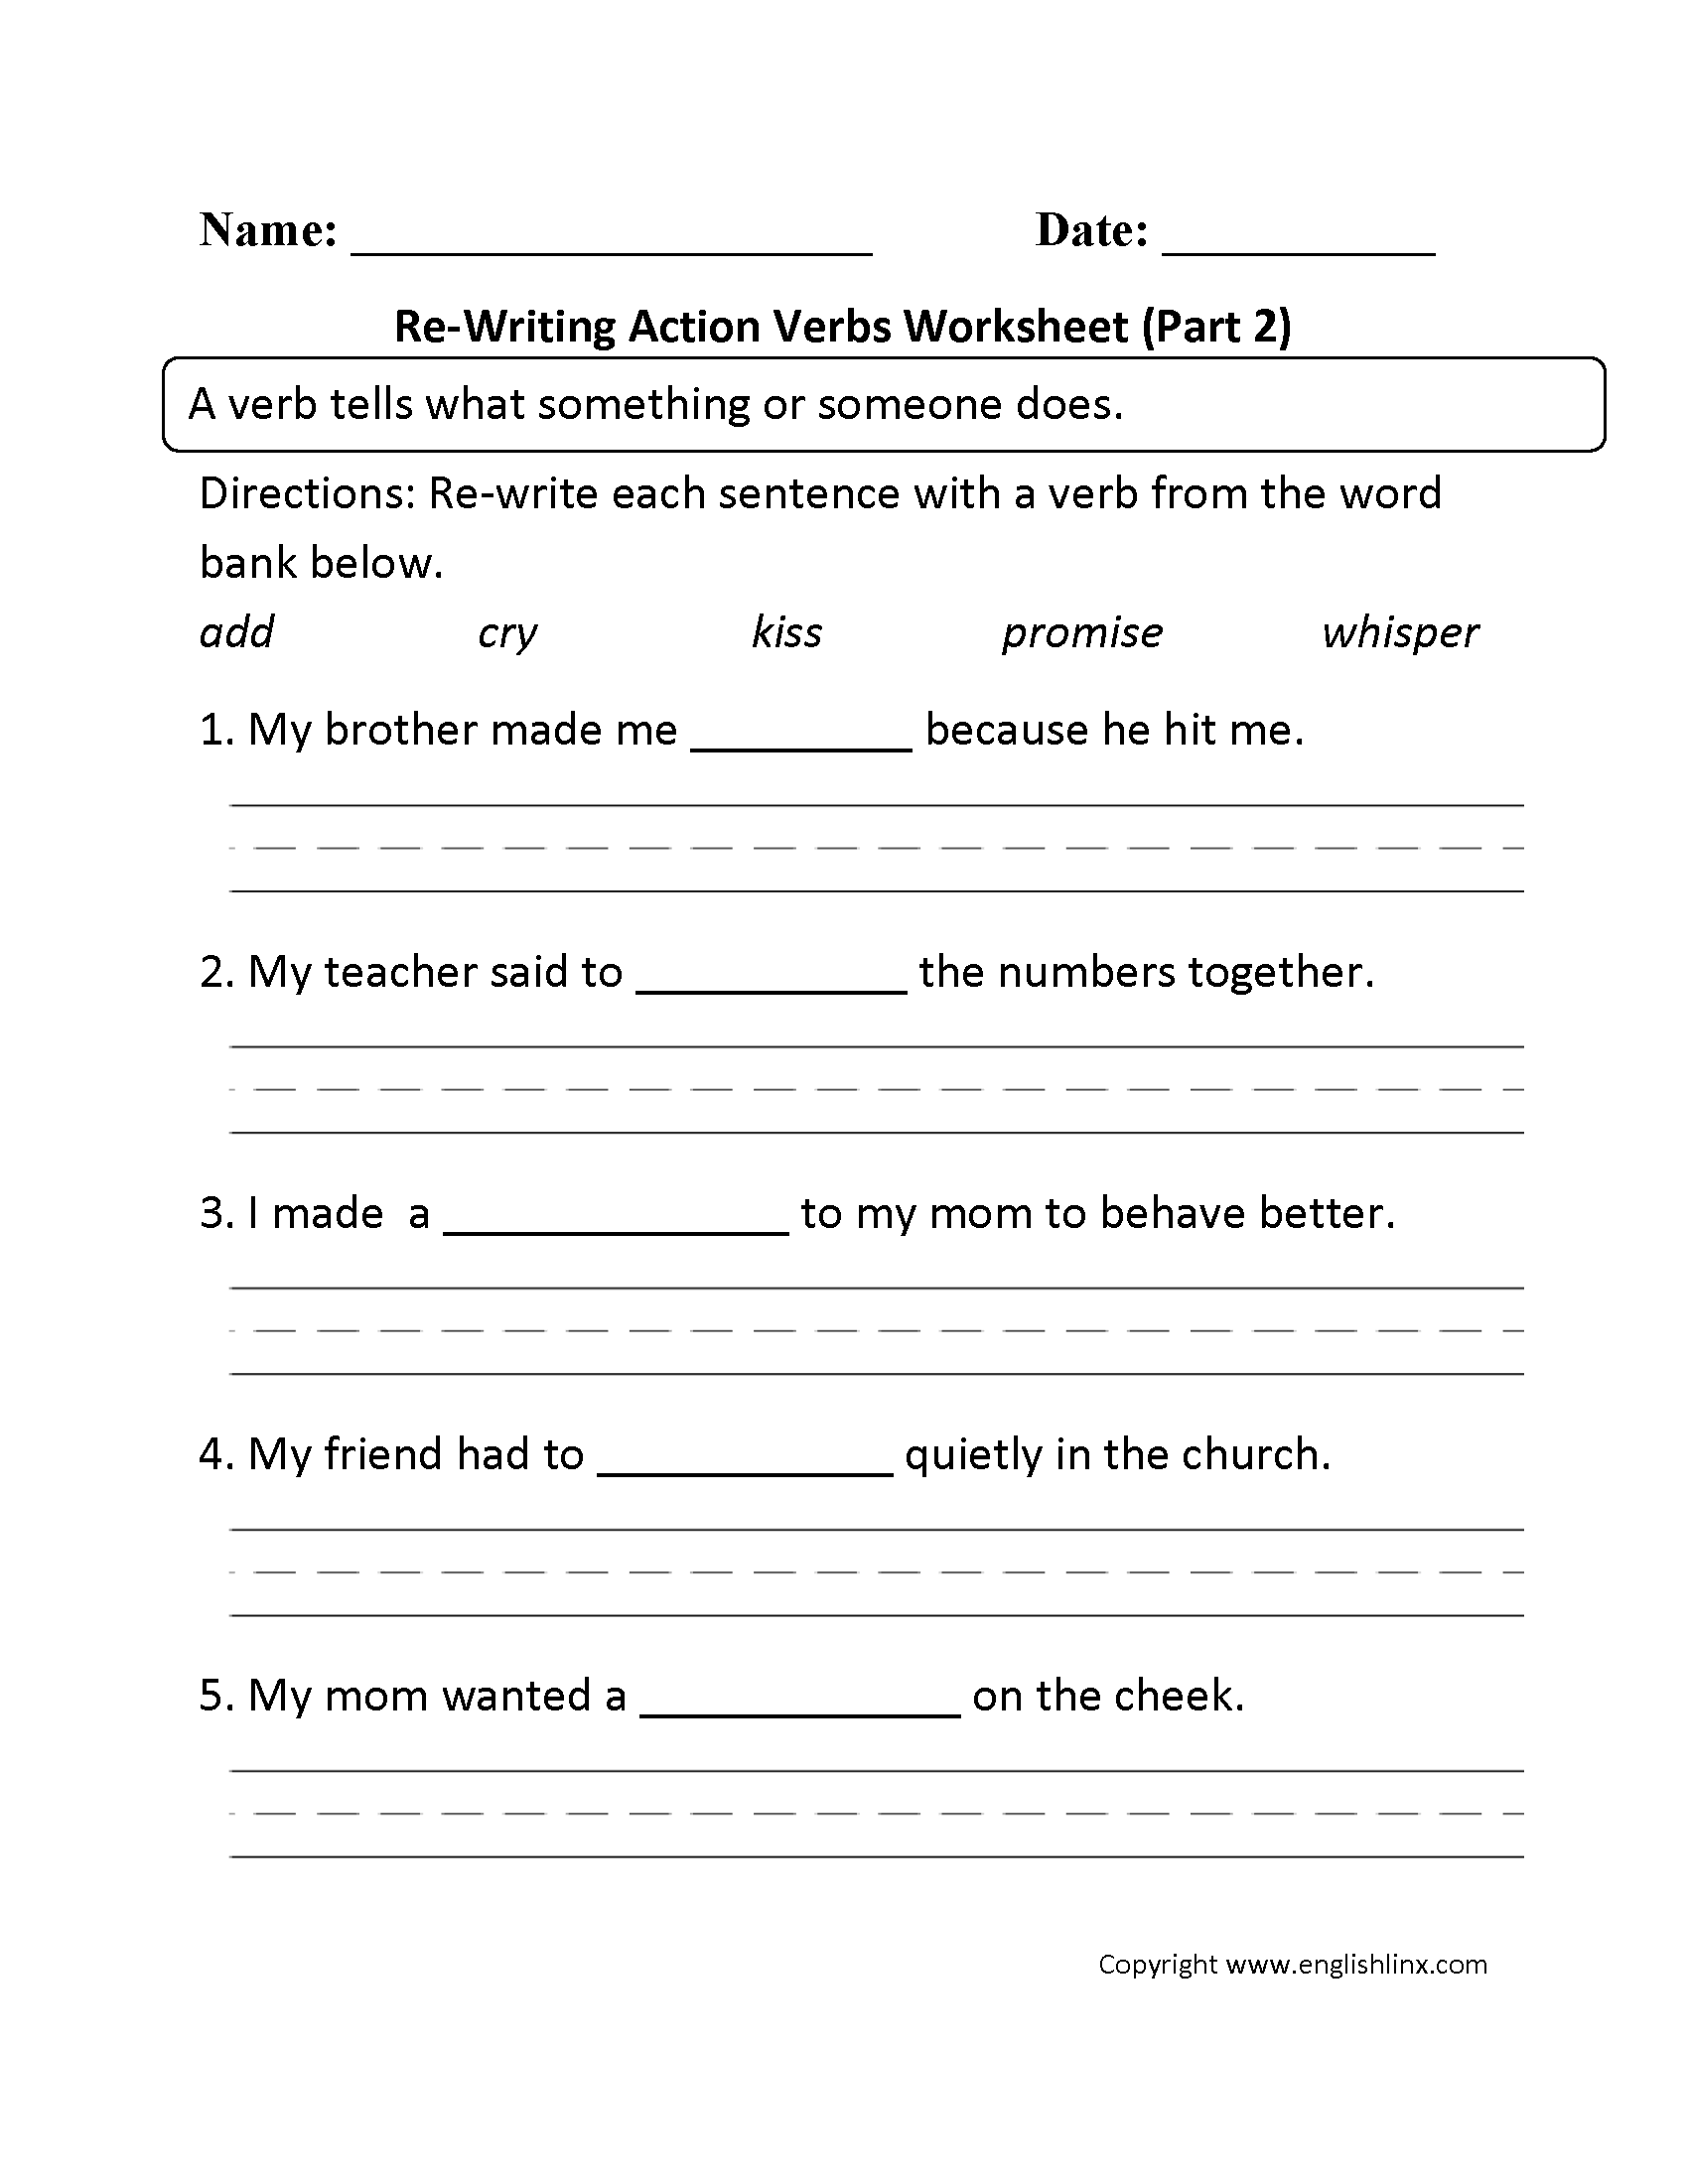 Re Writing Action Verbs Worksheet Part 2